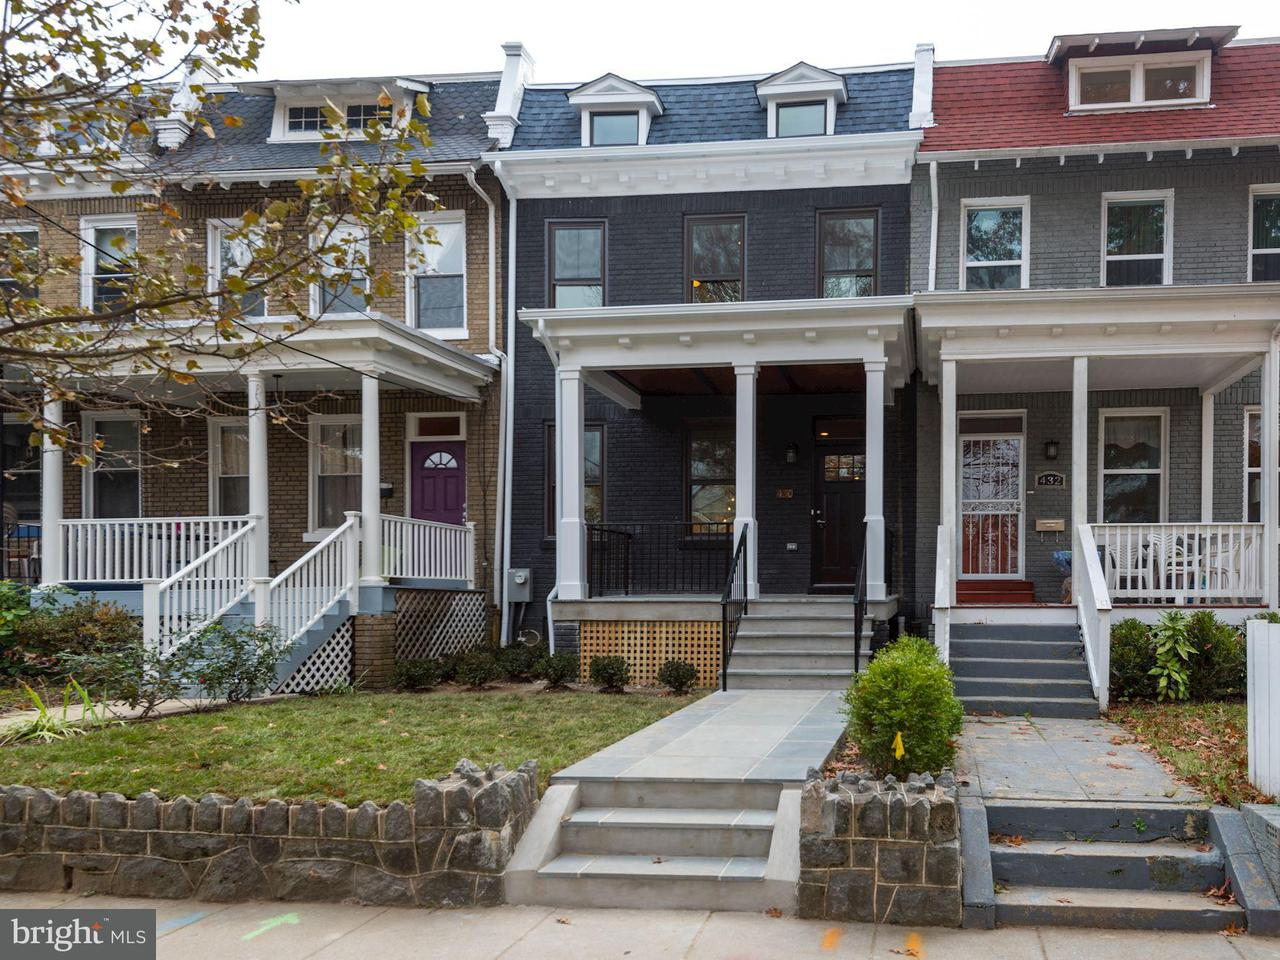 Townhouse for Sale at 430 TAYLOR ST NW 430 TAYLOR ST NW Washington, District Of Columbia 20011 United States